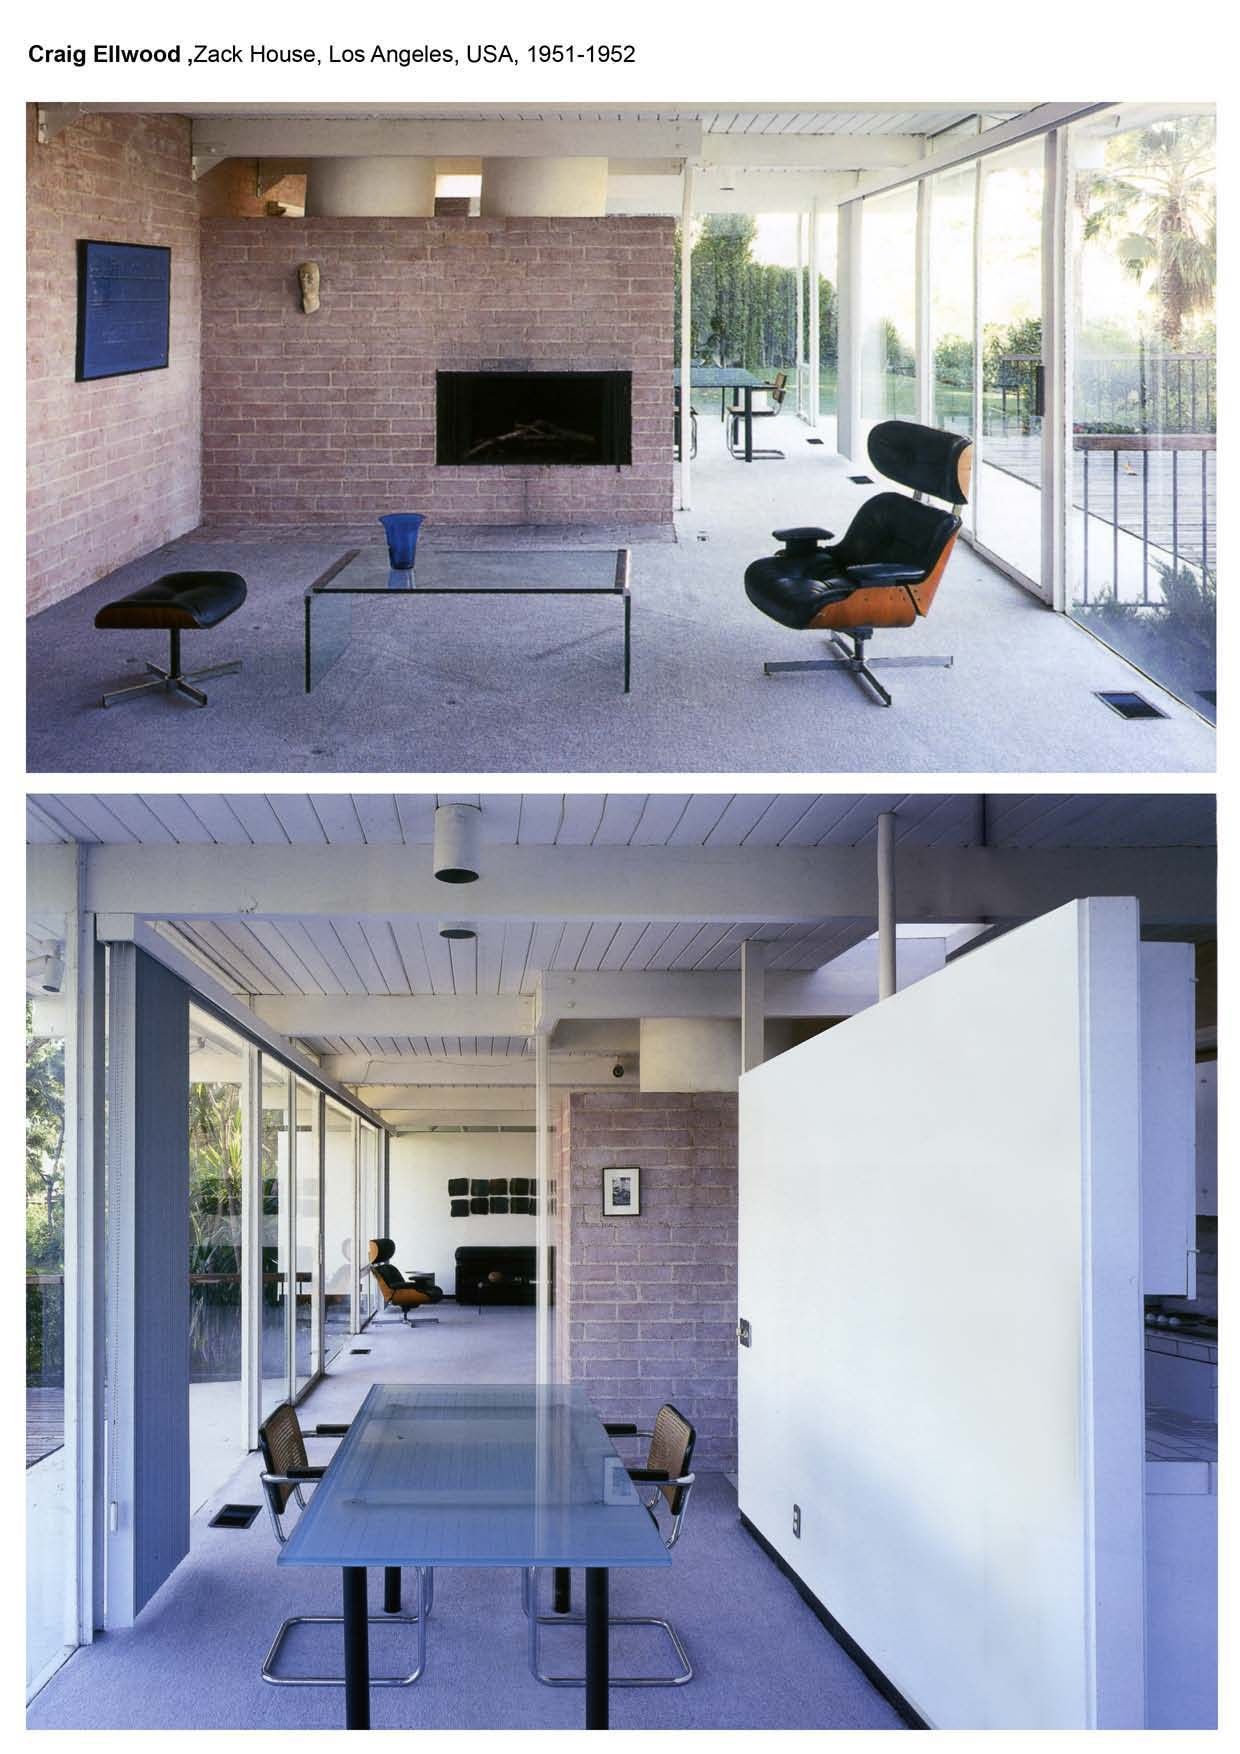 Modern homes los angeles brentwood untouched 1960 mid century modern - Zack House Brentwood 1953 West Coastmid Centuryhouseswindowarchi Design Moderninteriorsprefabauckland